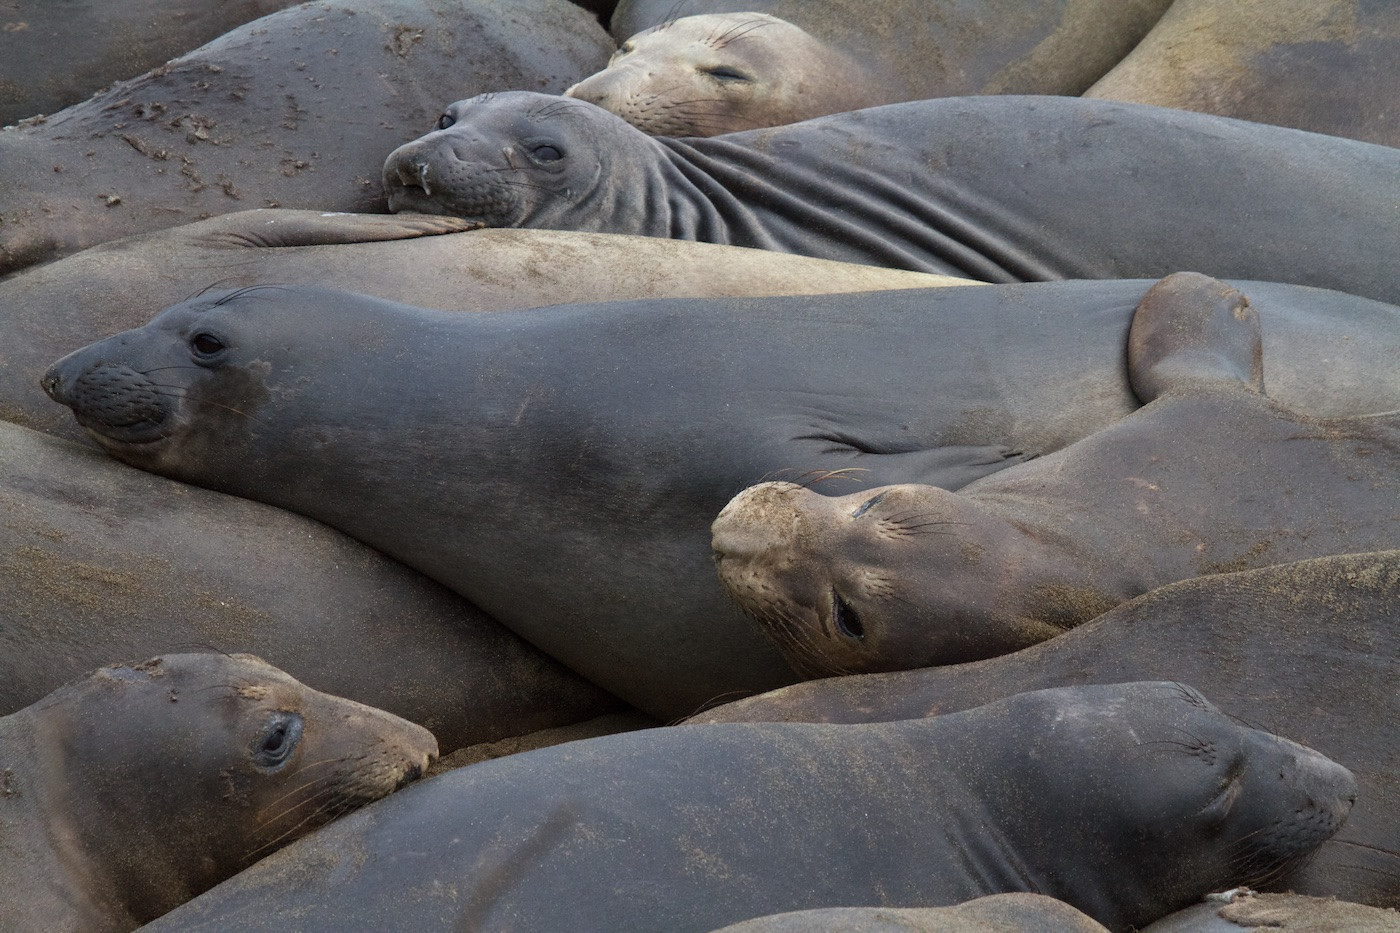 19 NORTHERN ELEPHANT SEAL HAREM by Sue Pennicott